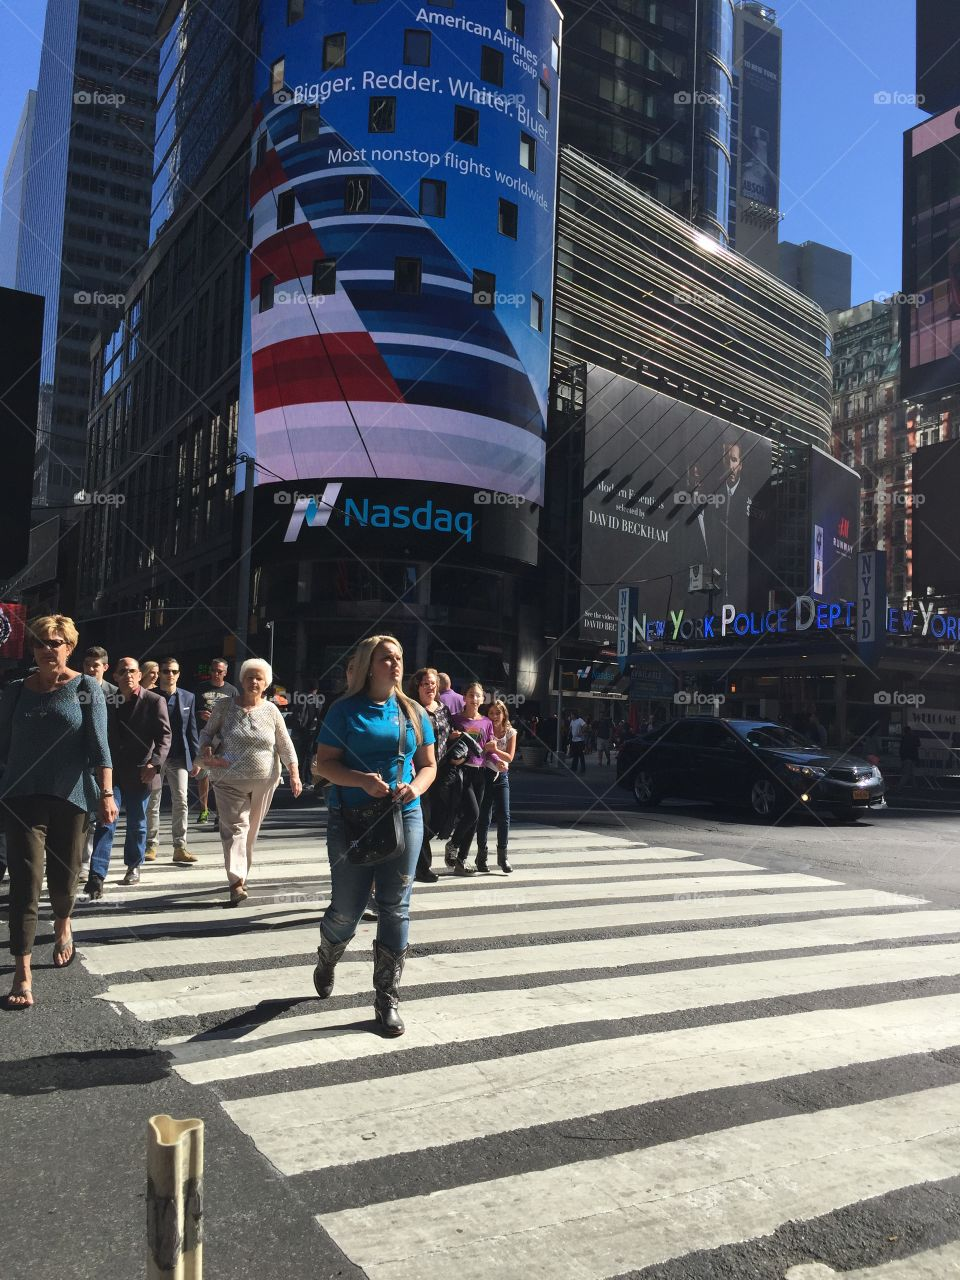 Pedestrians in crosswalk at Times Square New York City midtown Manhattan with Nasdaq and NYPD starion